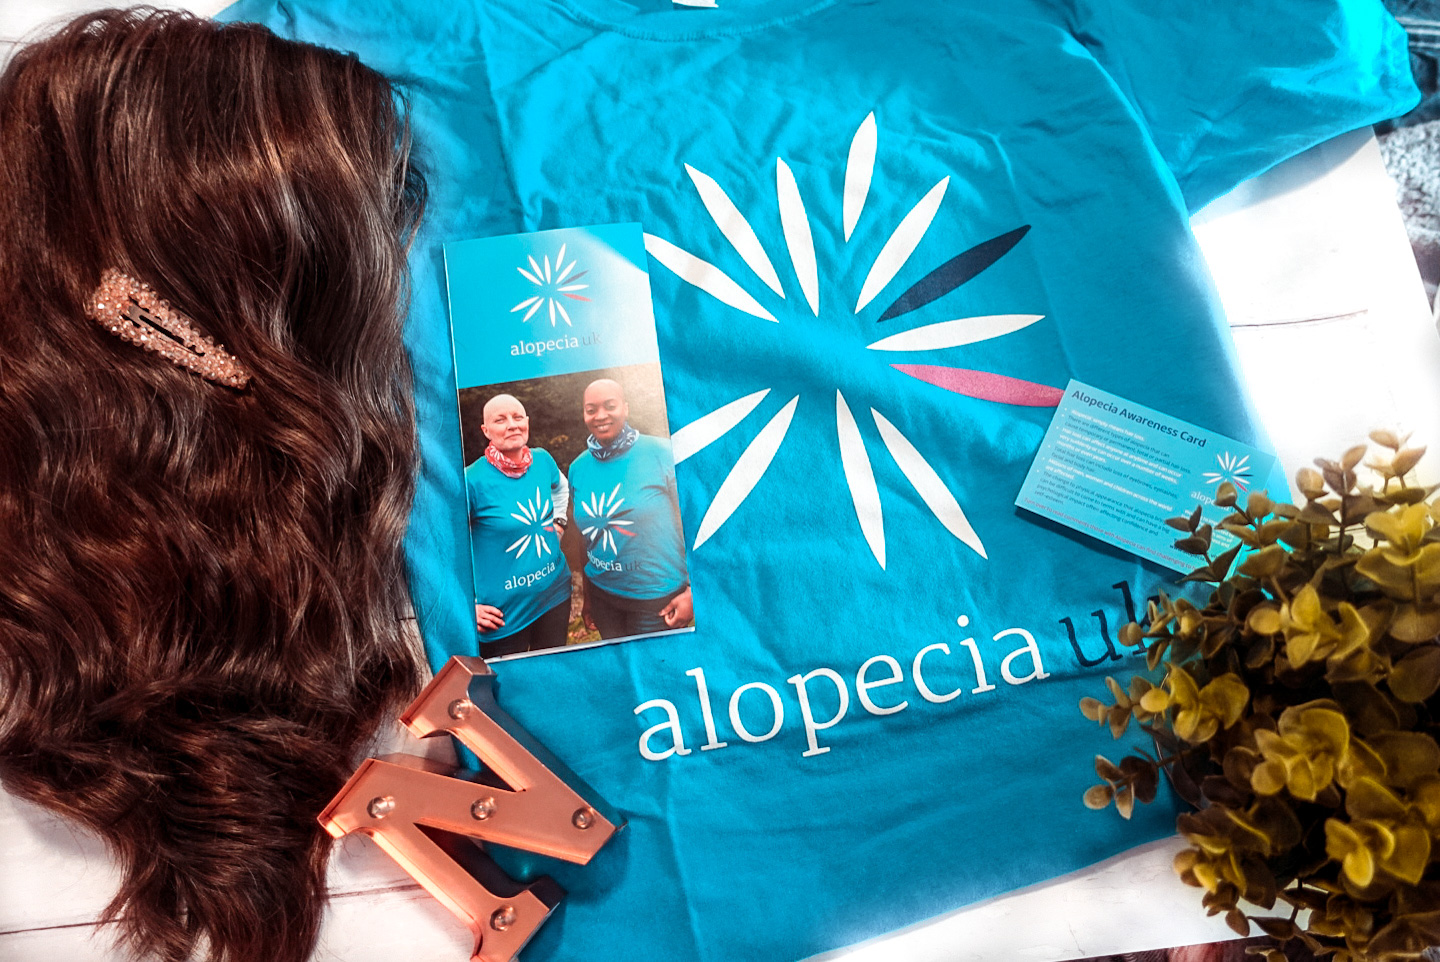 A flat flat of assorted items on a white table, the items include a bright blue t-shirt from Alopecia UK, a small rose gold letter N, a wig by Jon Renau called Heidi in a brunette colour and a small green house plant.